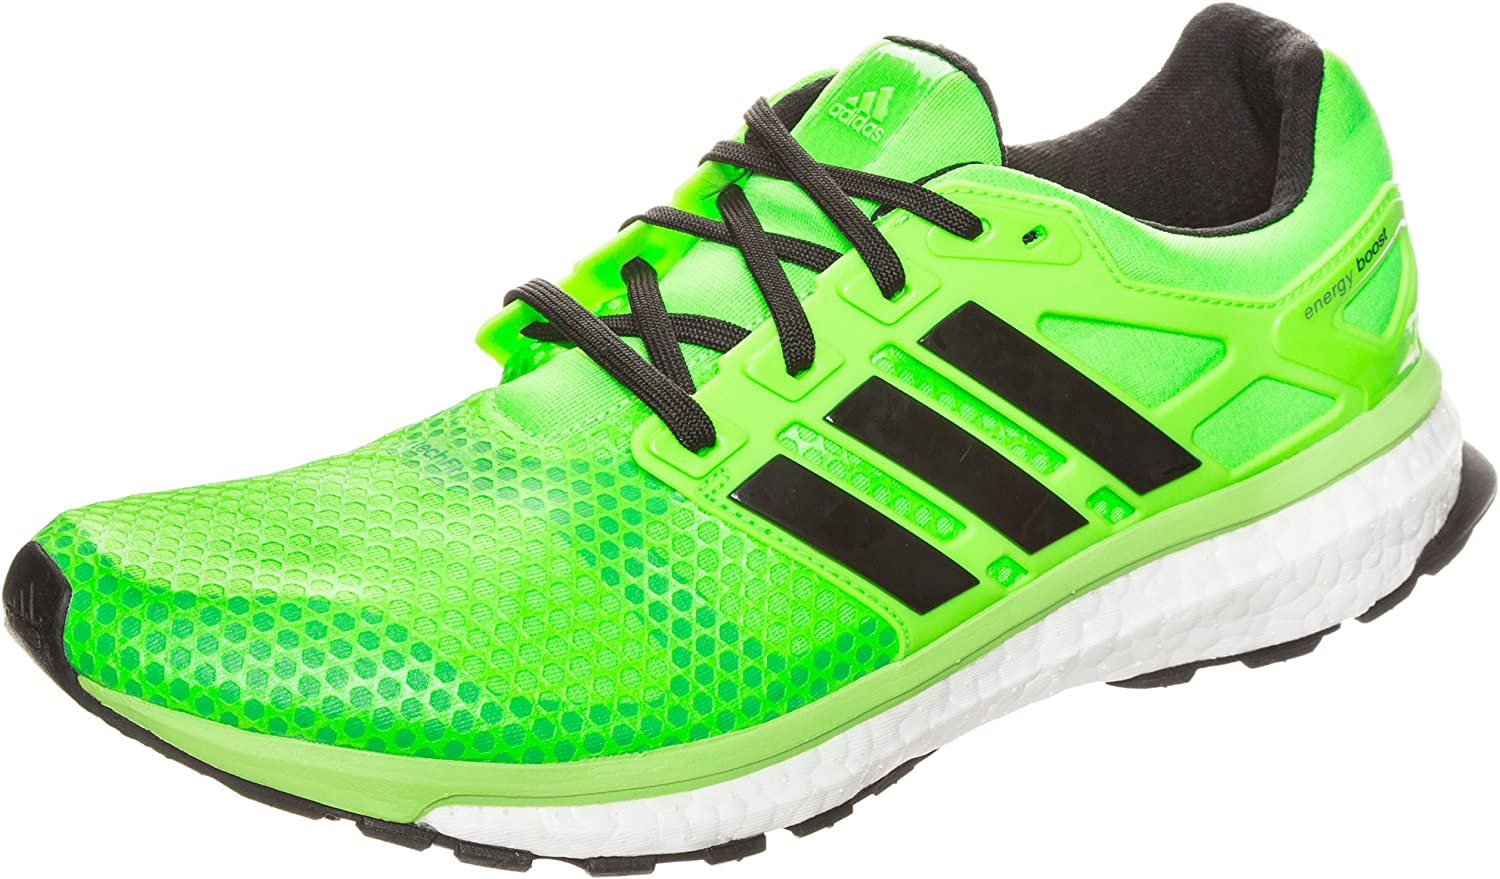 adidas Energy Boost 2 ATR Zapatillas de Running, Green - Green: Amazon.es: Deportes y aire libre